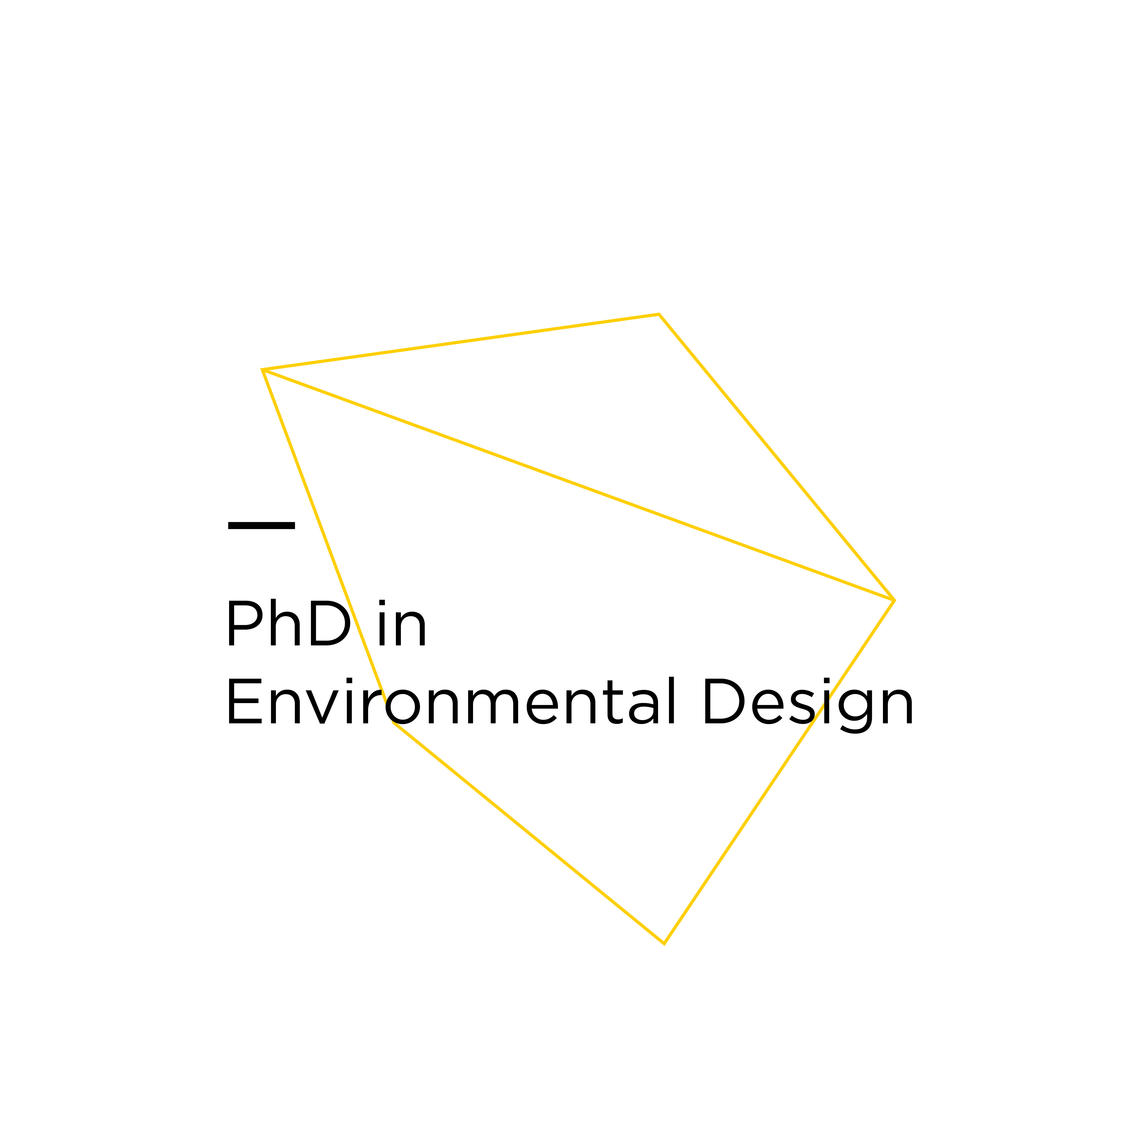 PhD in Environmental Design